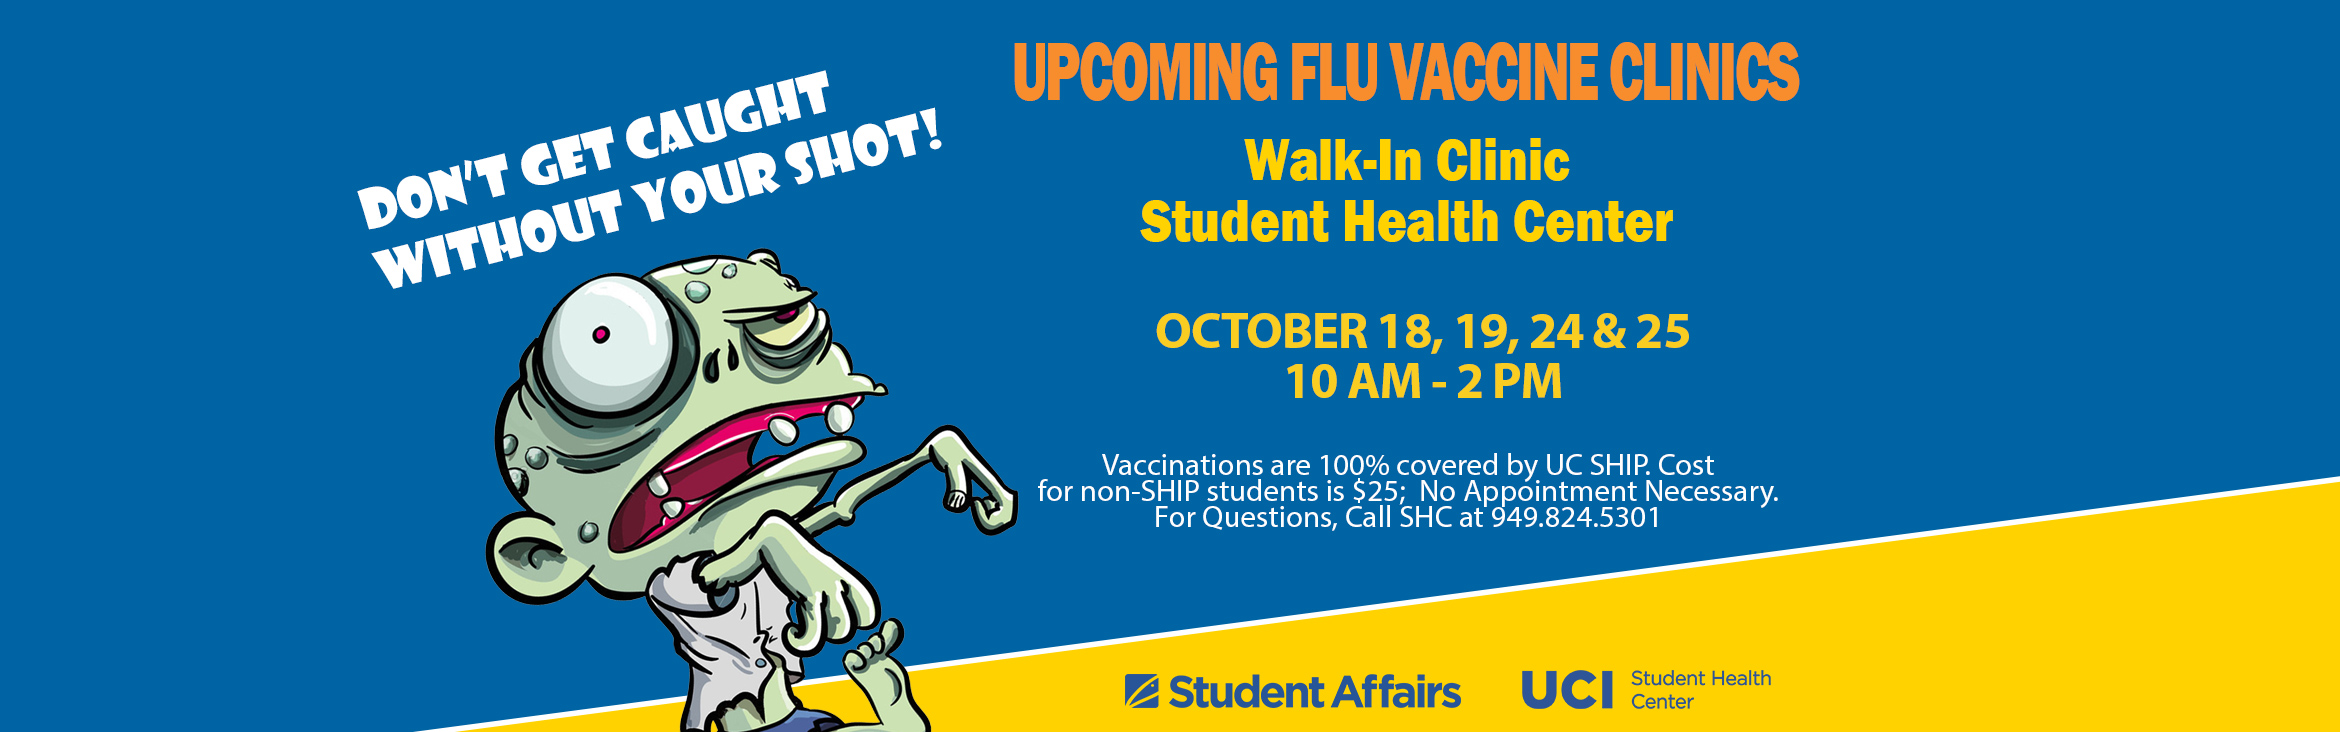 Don' Get Caught Without Your Shot! Upcoming Flu Vaccine Clinics, Walk-in Clinic Student Health Center, October 18, 19, 24 & 25, 10 AM - 2 PM, Vaccinations are 100& covered by UC SHIP.  Cost for non-SHIP students is $25;  No Appointment Necessary.